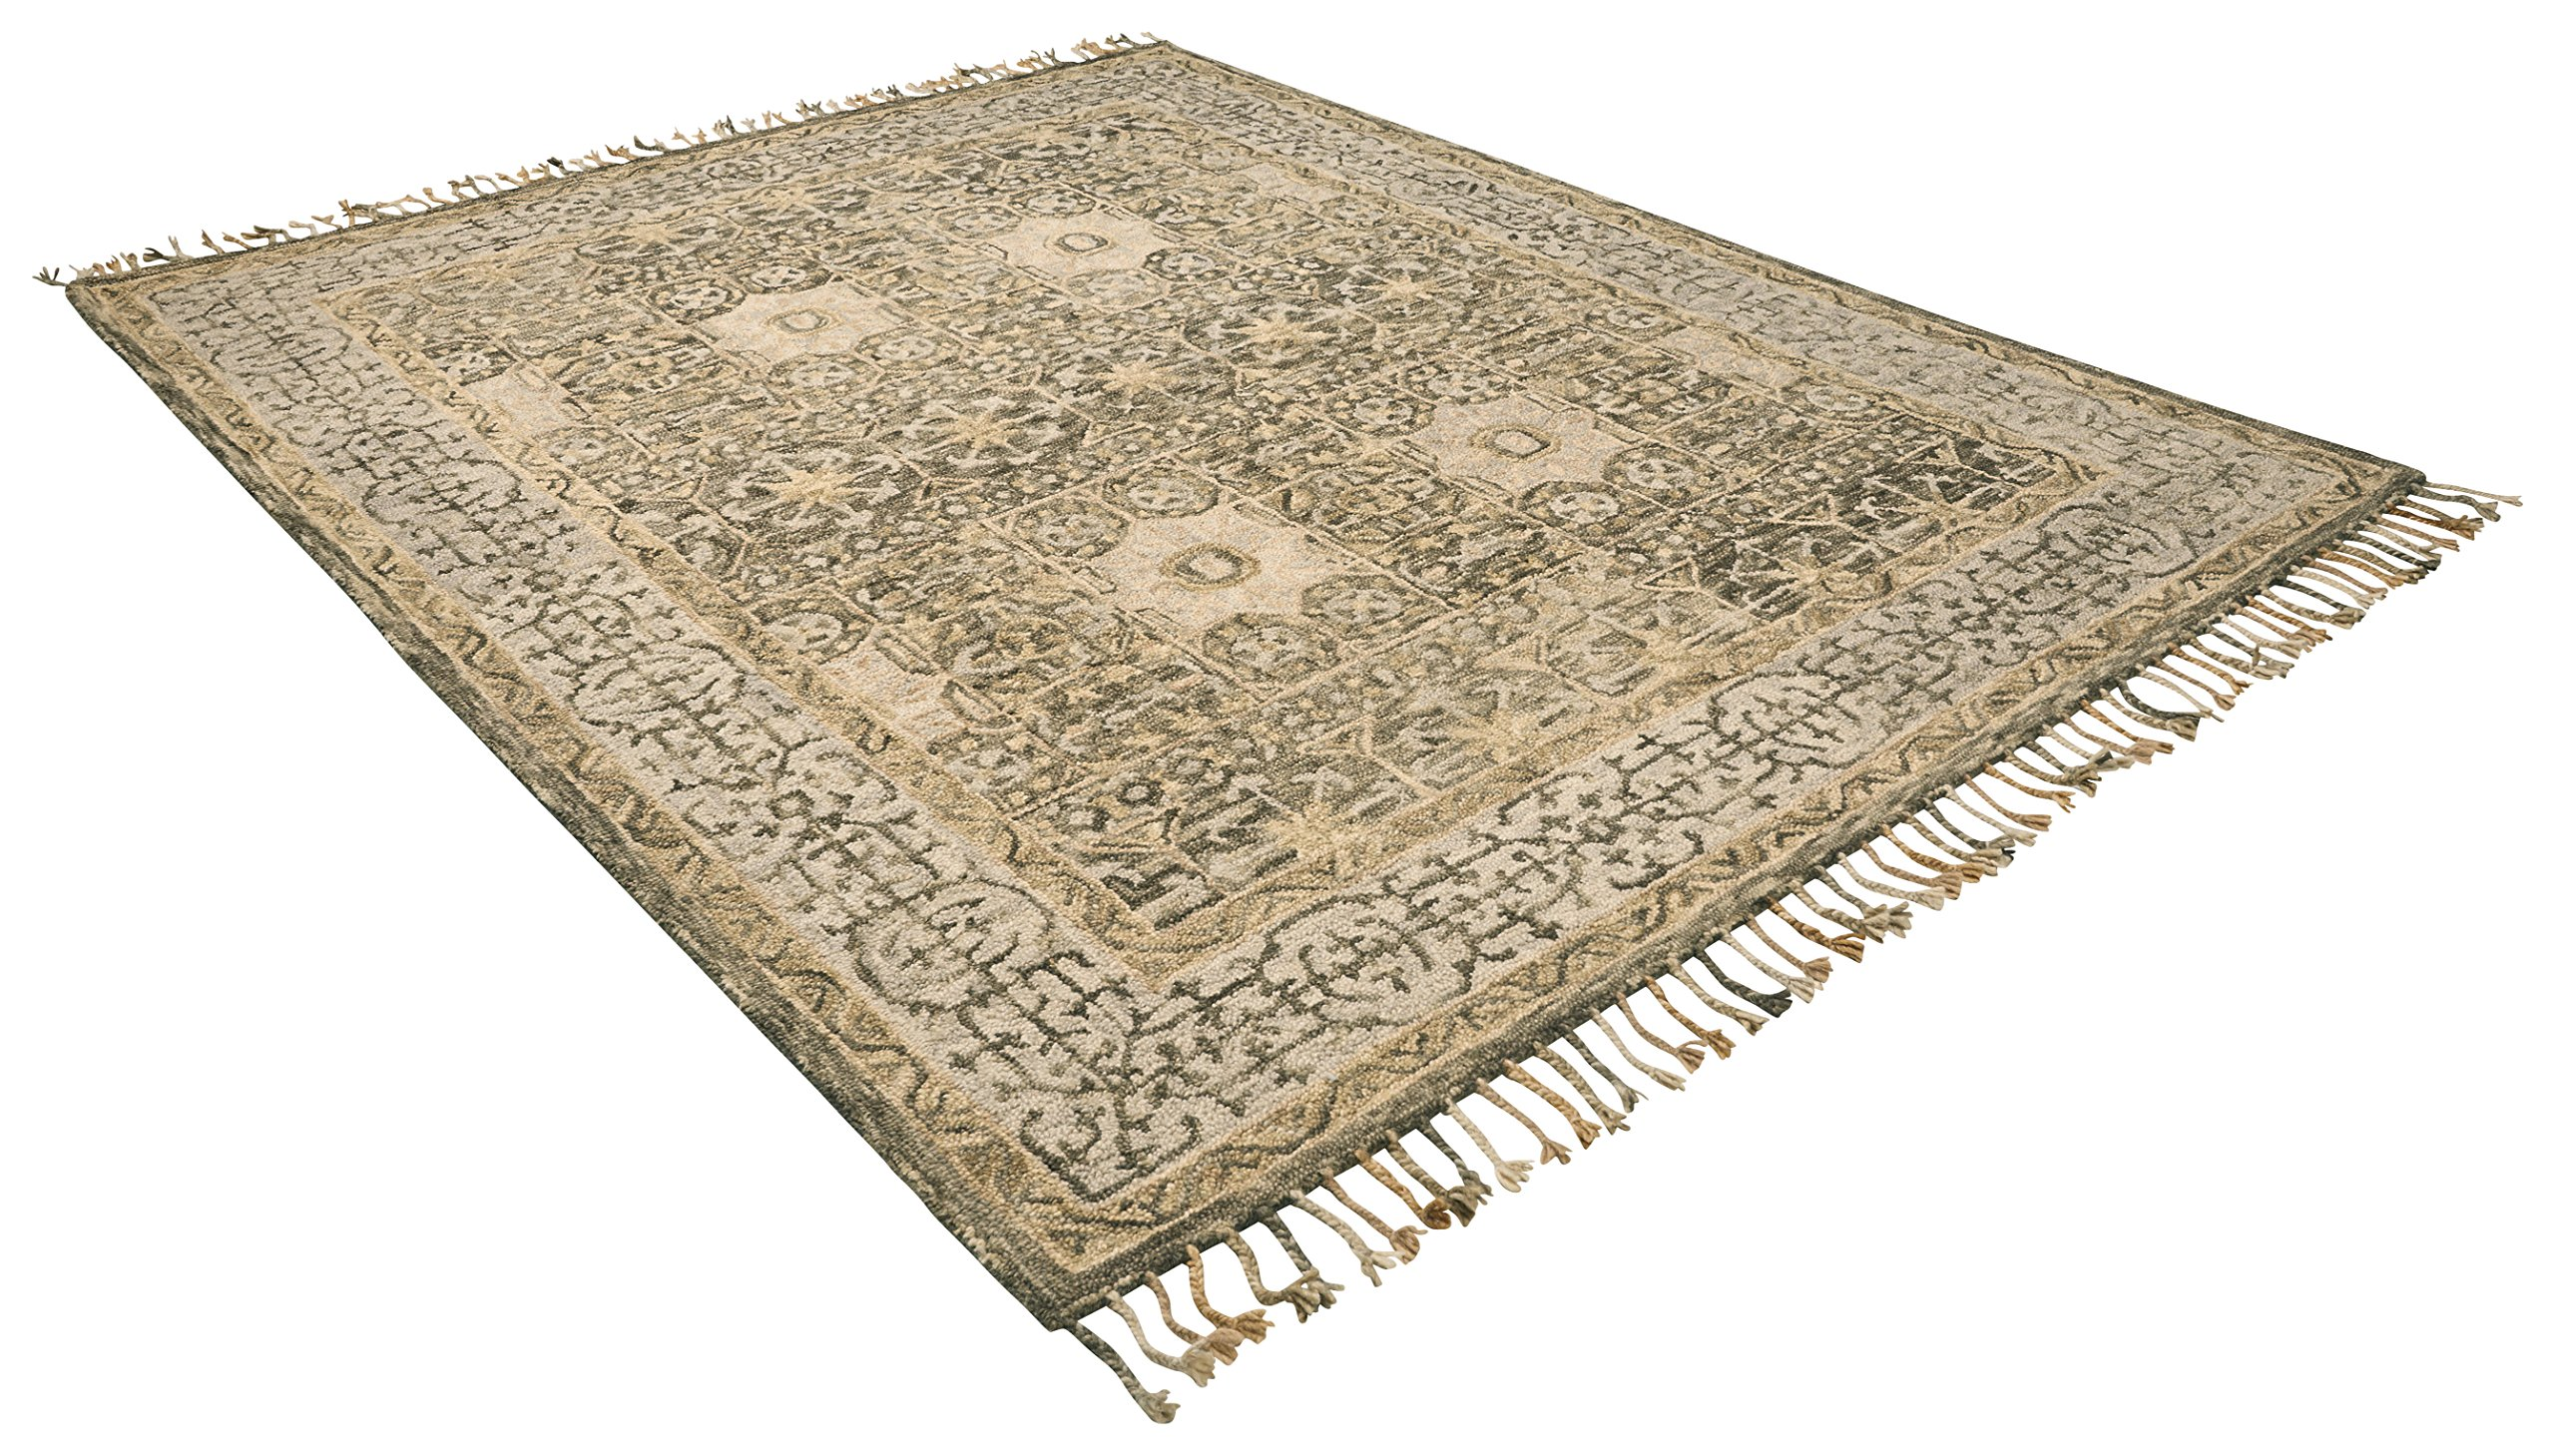 Stone & Beam Kelsea Transitional Wool Area Rug, 8' x 10', Beige and Grey by Stone & Beam (Image #5)